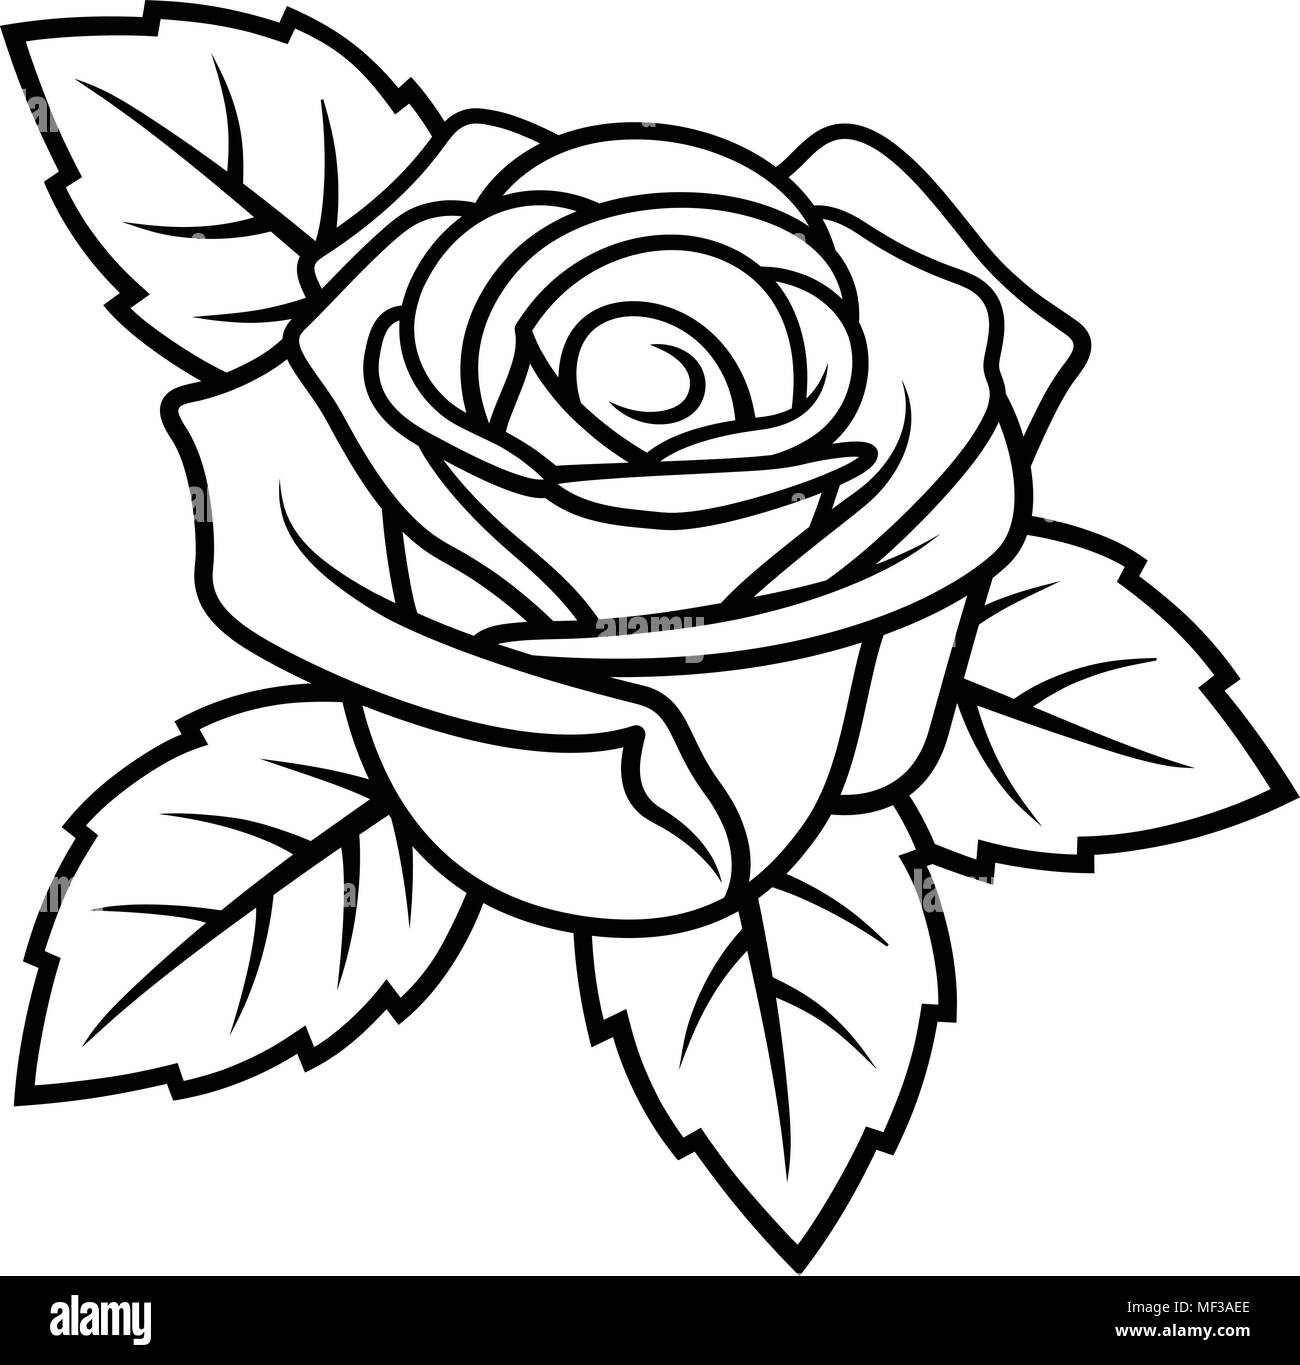 Sketch Of Rose Isolated On White Background. Use For